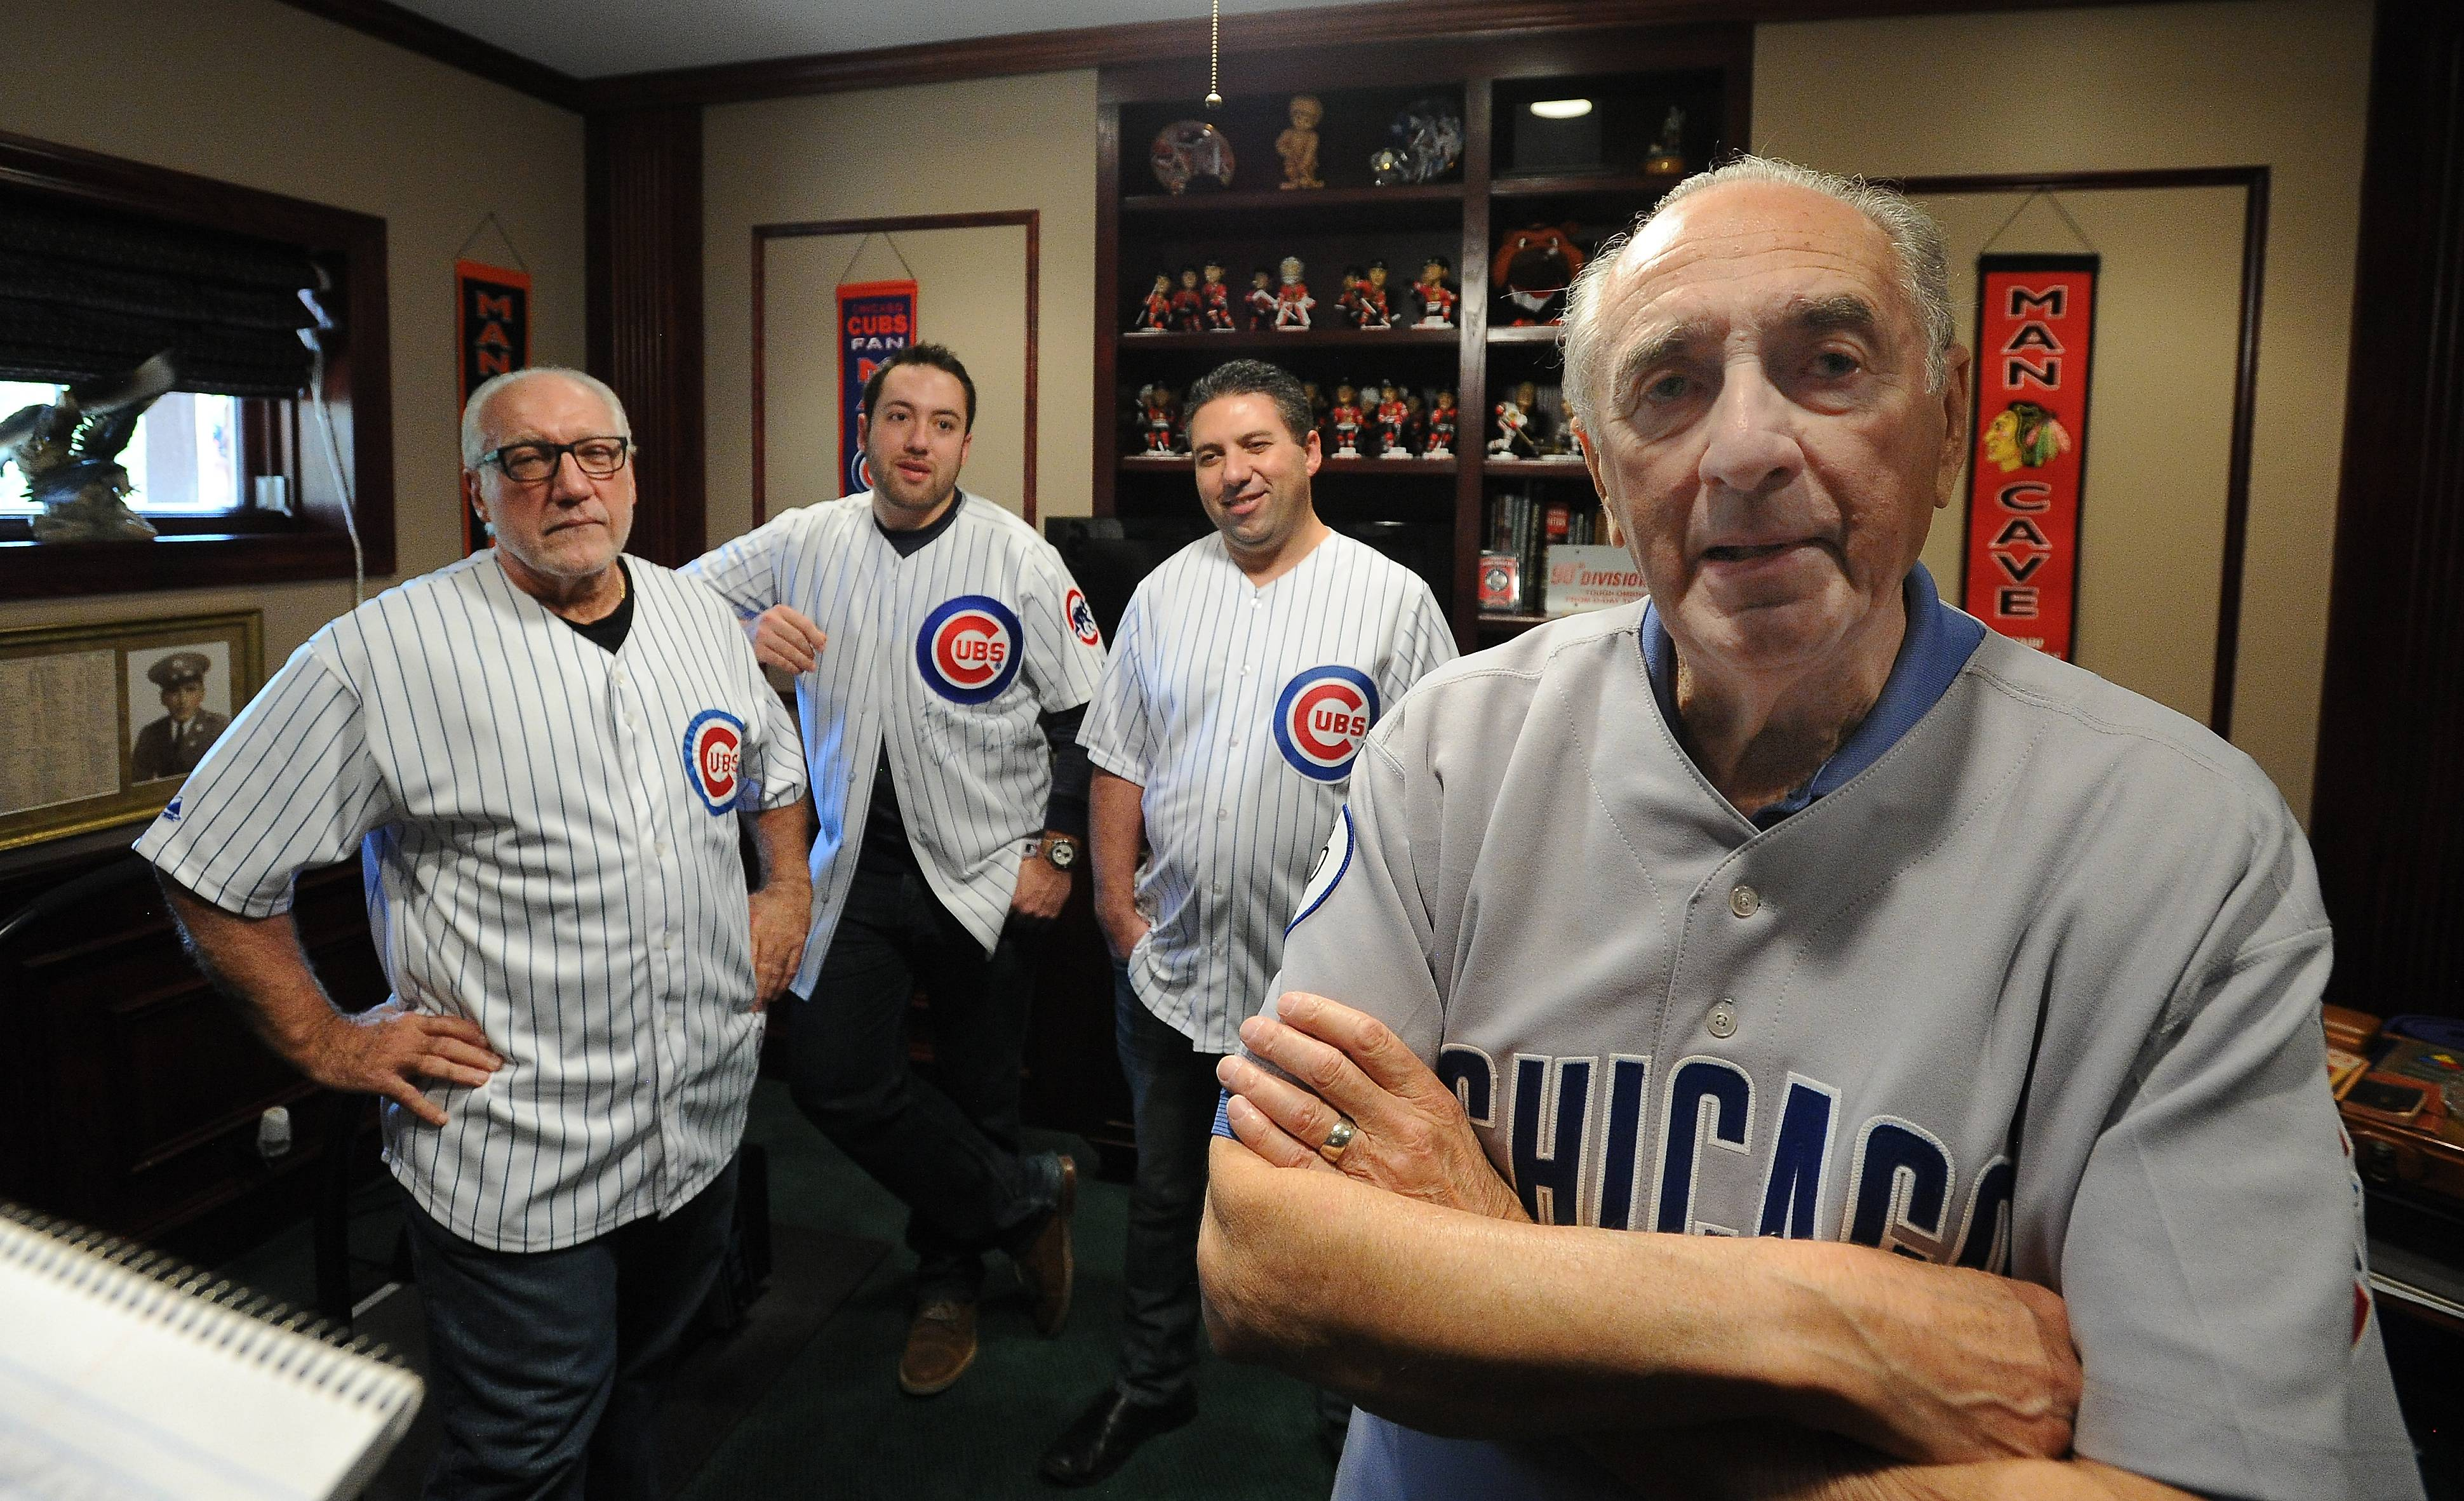 The Chicago Cubs are just another member of the family for the Pellettiere clan. Three generations of Pellettieres, from left, John Jr., his sons, Joe and John III, and Dan Pellettiere, are going to Game 4 at Wrigley Field, where Dan remembers watching the 1945 World Series.